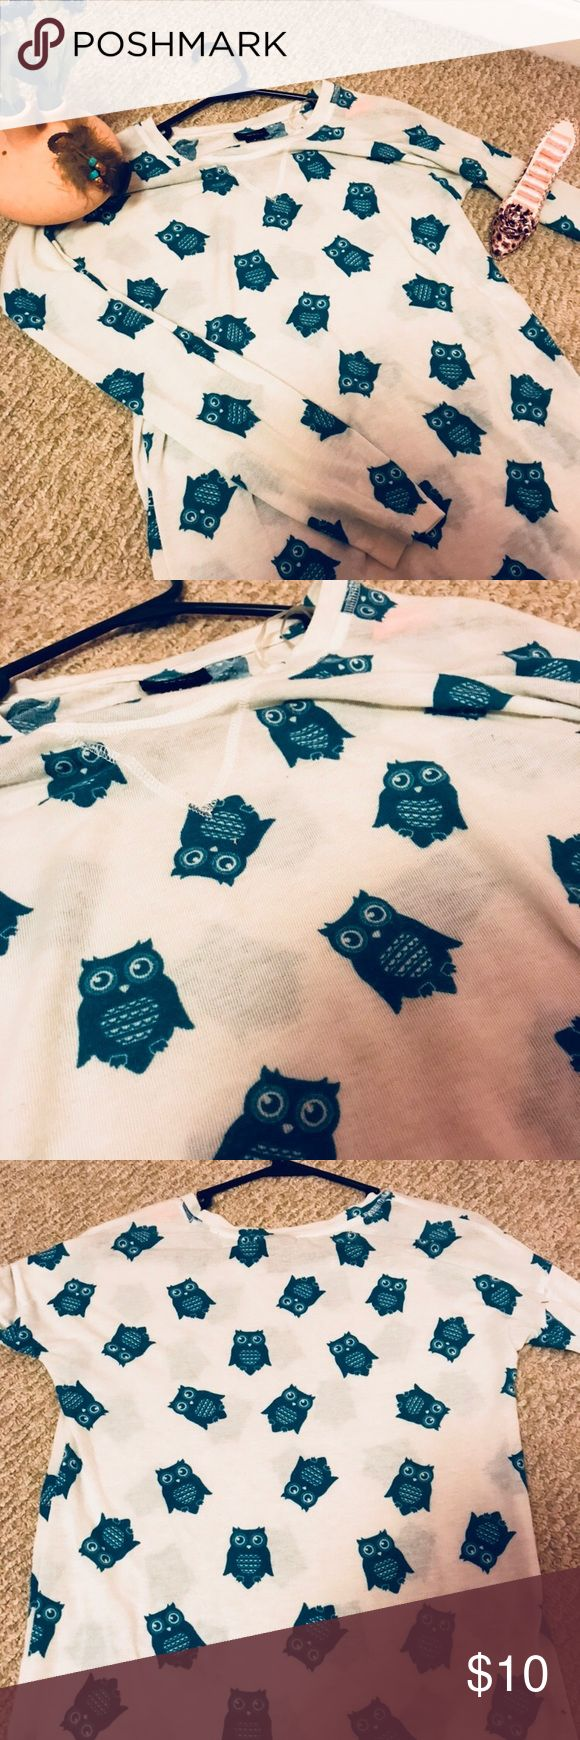 Rue 21 long sleeved owl shirt Rue 21  Long sleeved  Light weight  Blue owls all over  Size small 92% polyester  8% spandex No damage  Worn once Rue 21 Tops Tees - Long Sleeve